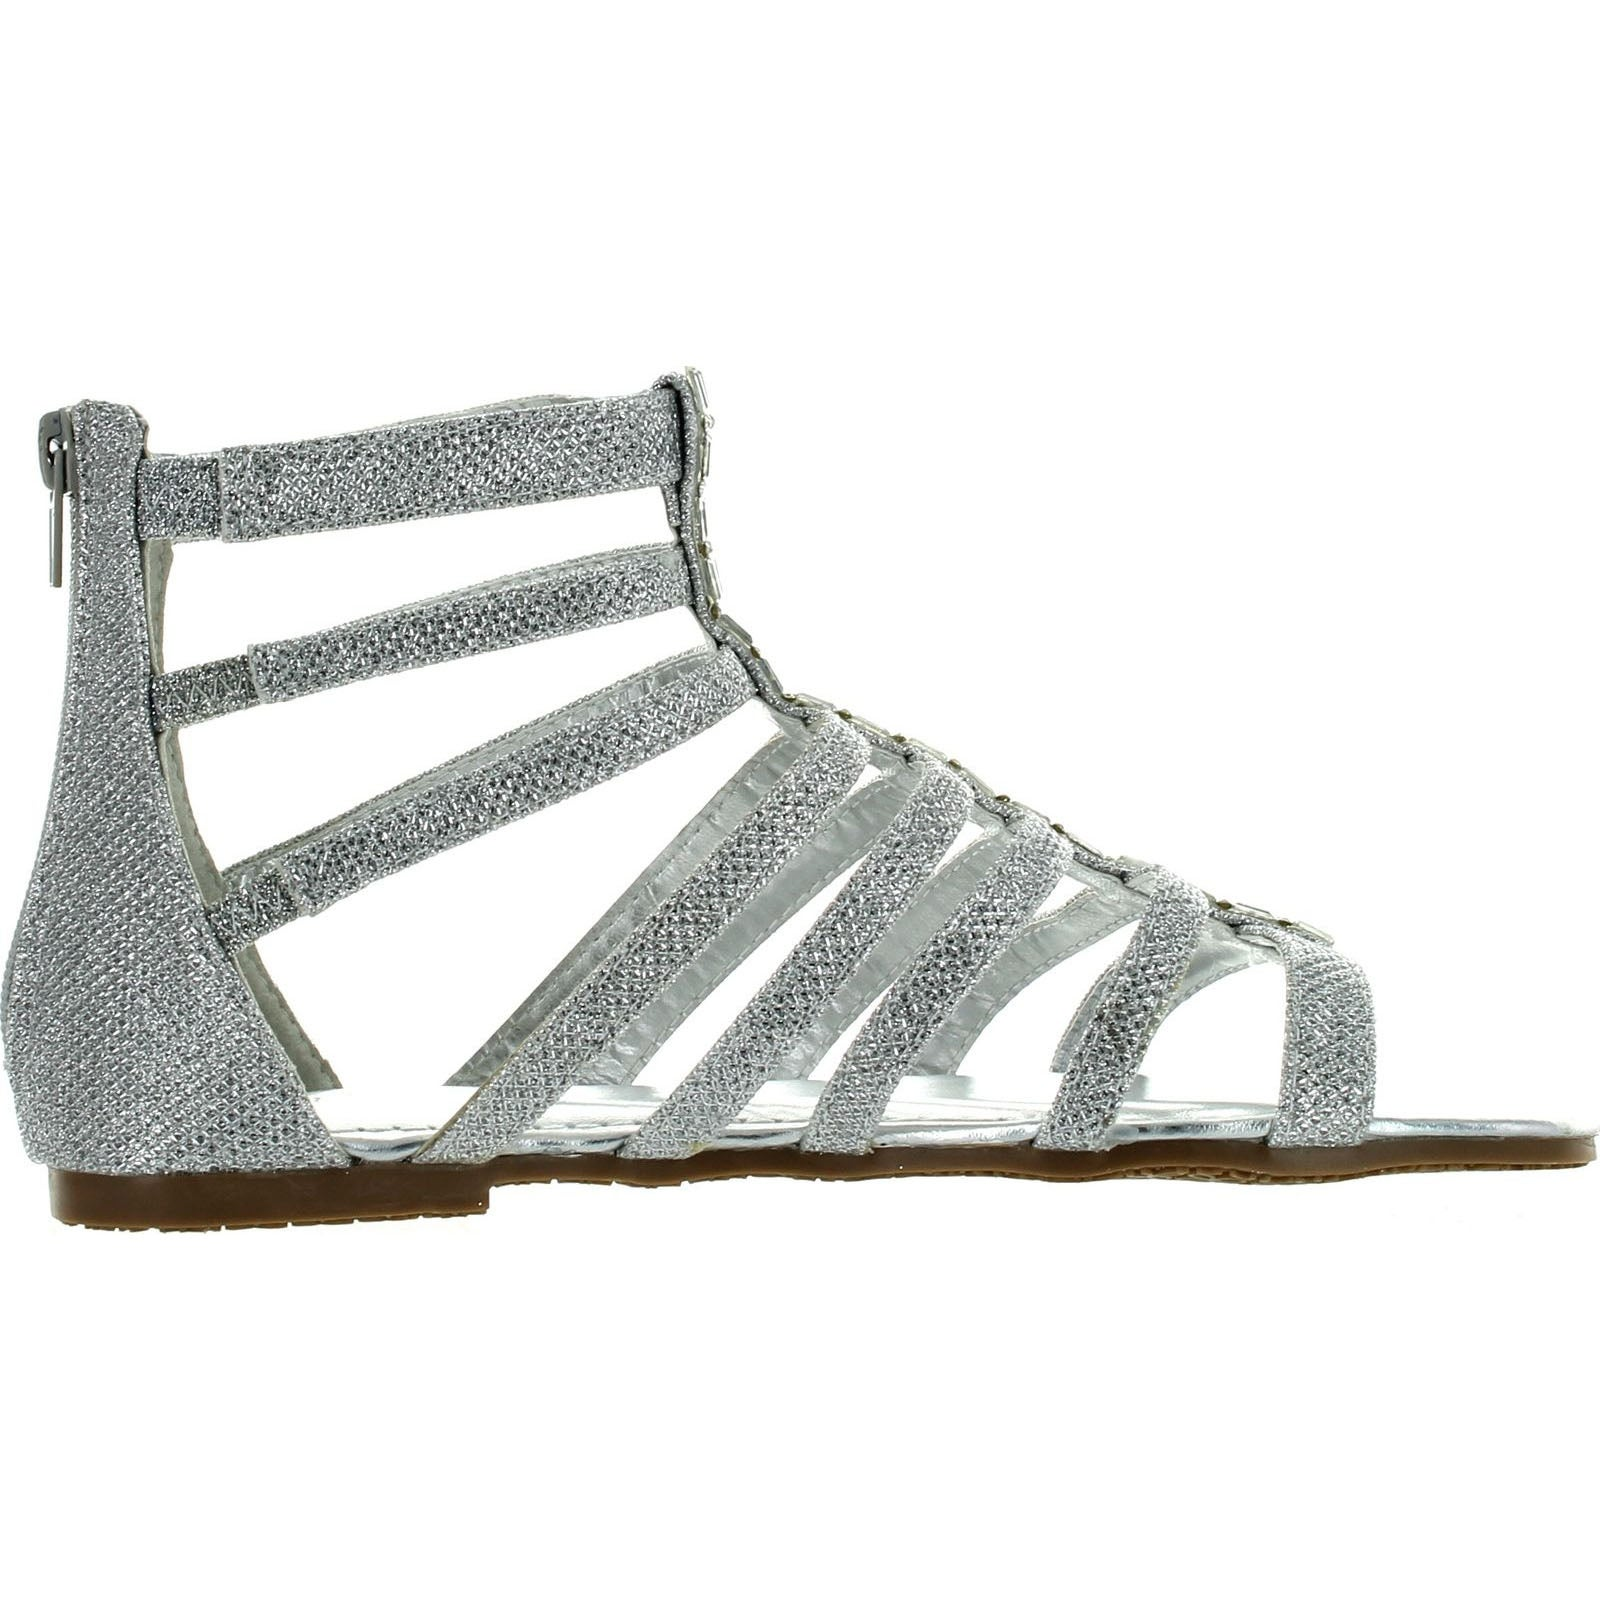 348d513c3131 Shop Bamboo Womens Fenchel 43 Gladiator Rhinestone Glitter Thong Flat  Sandals Silver - Free Shipping On Orders Over $45 - Overstock - 14384196